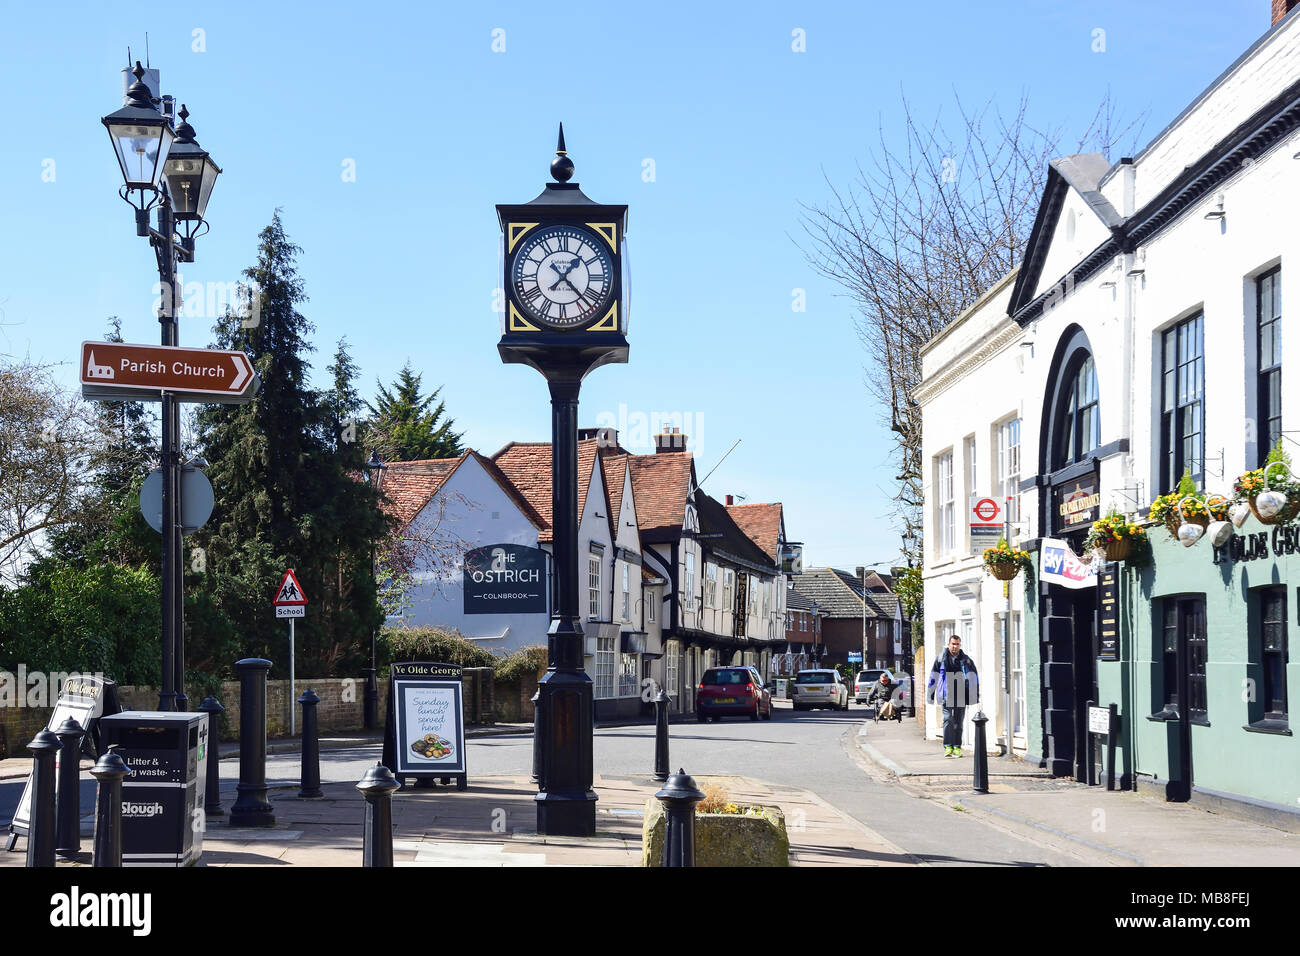 Ye Olde George and the Ostrich Inns, High Street, Colnbrook, Berkshire, England, United Kingdom - Stock Image